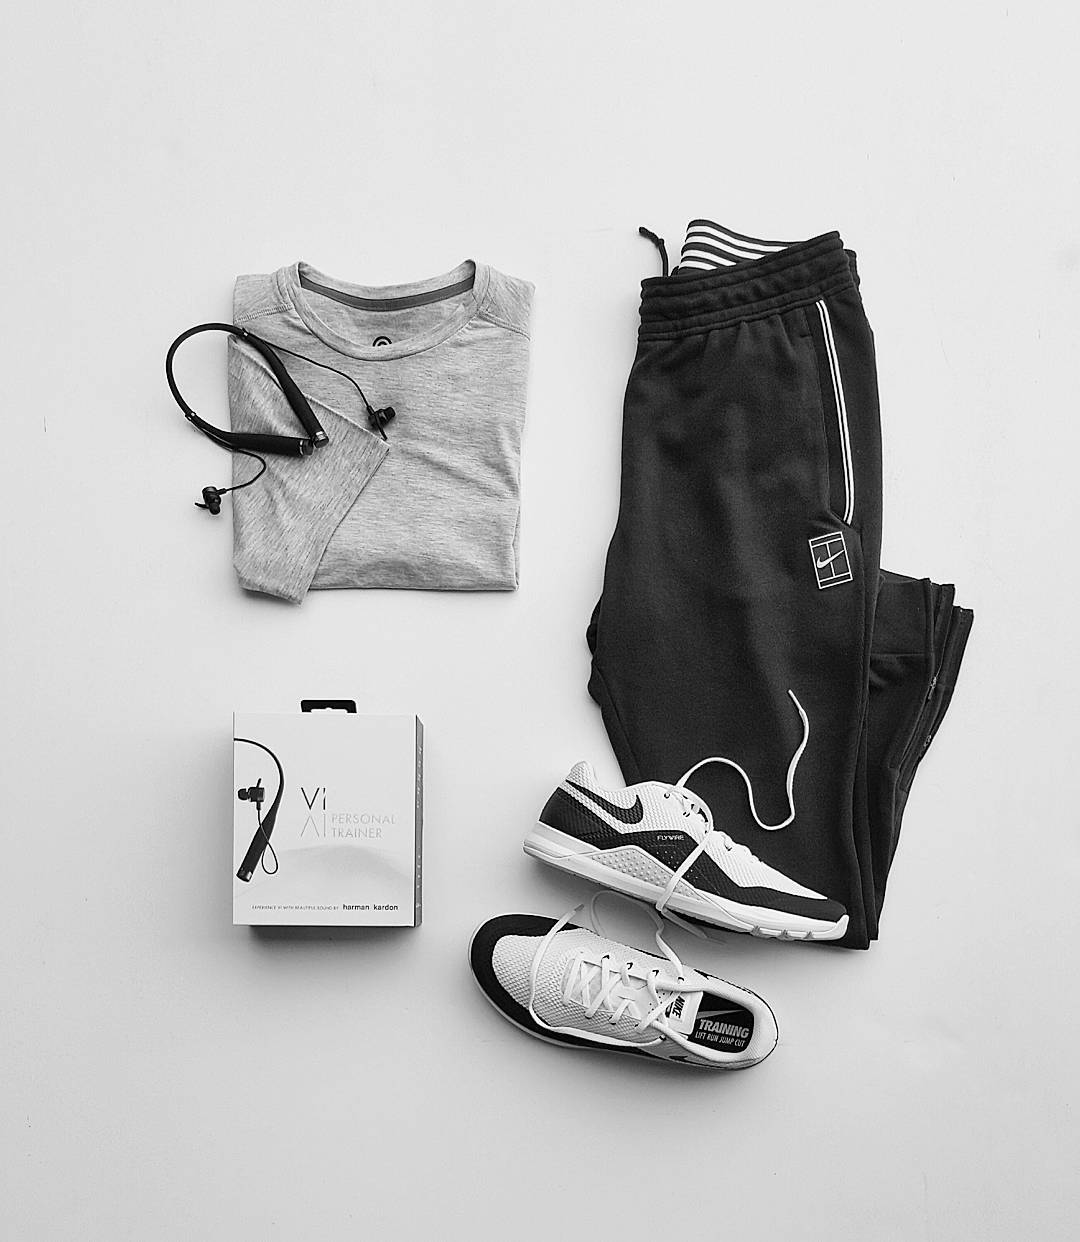 Simple Outfit Of The Day Ideas For Men